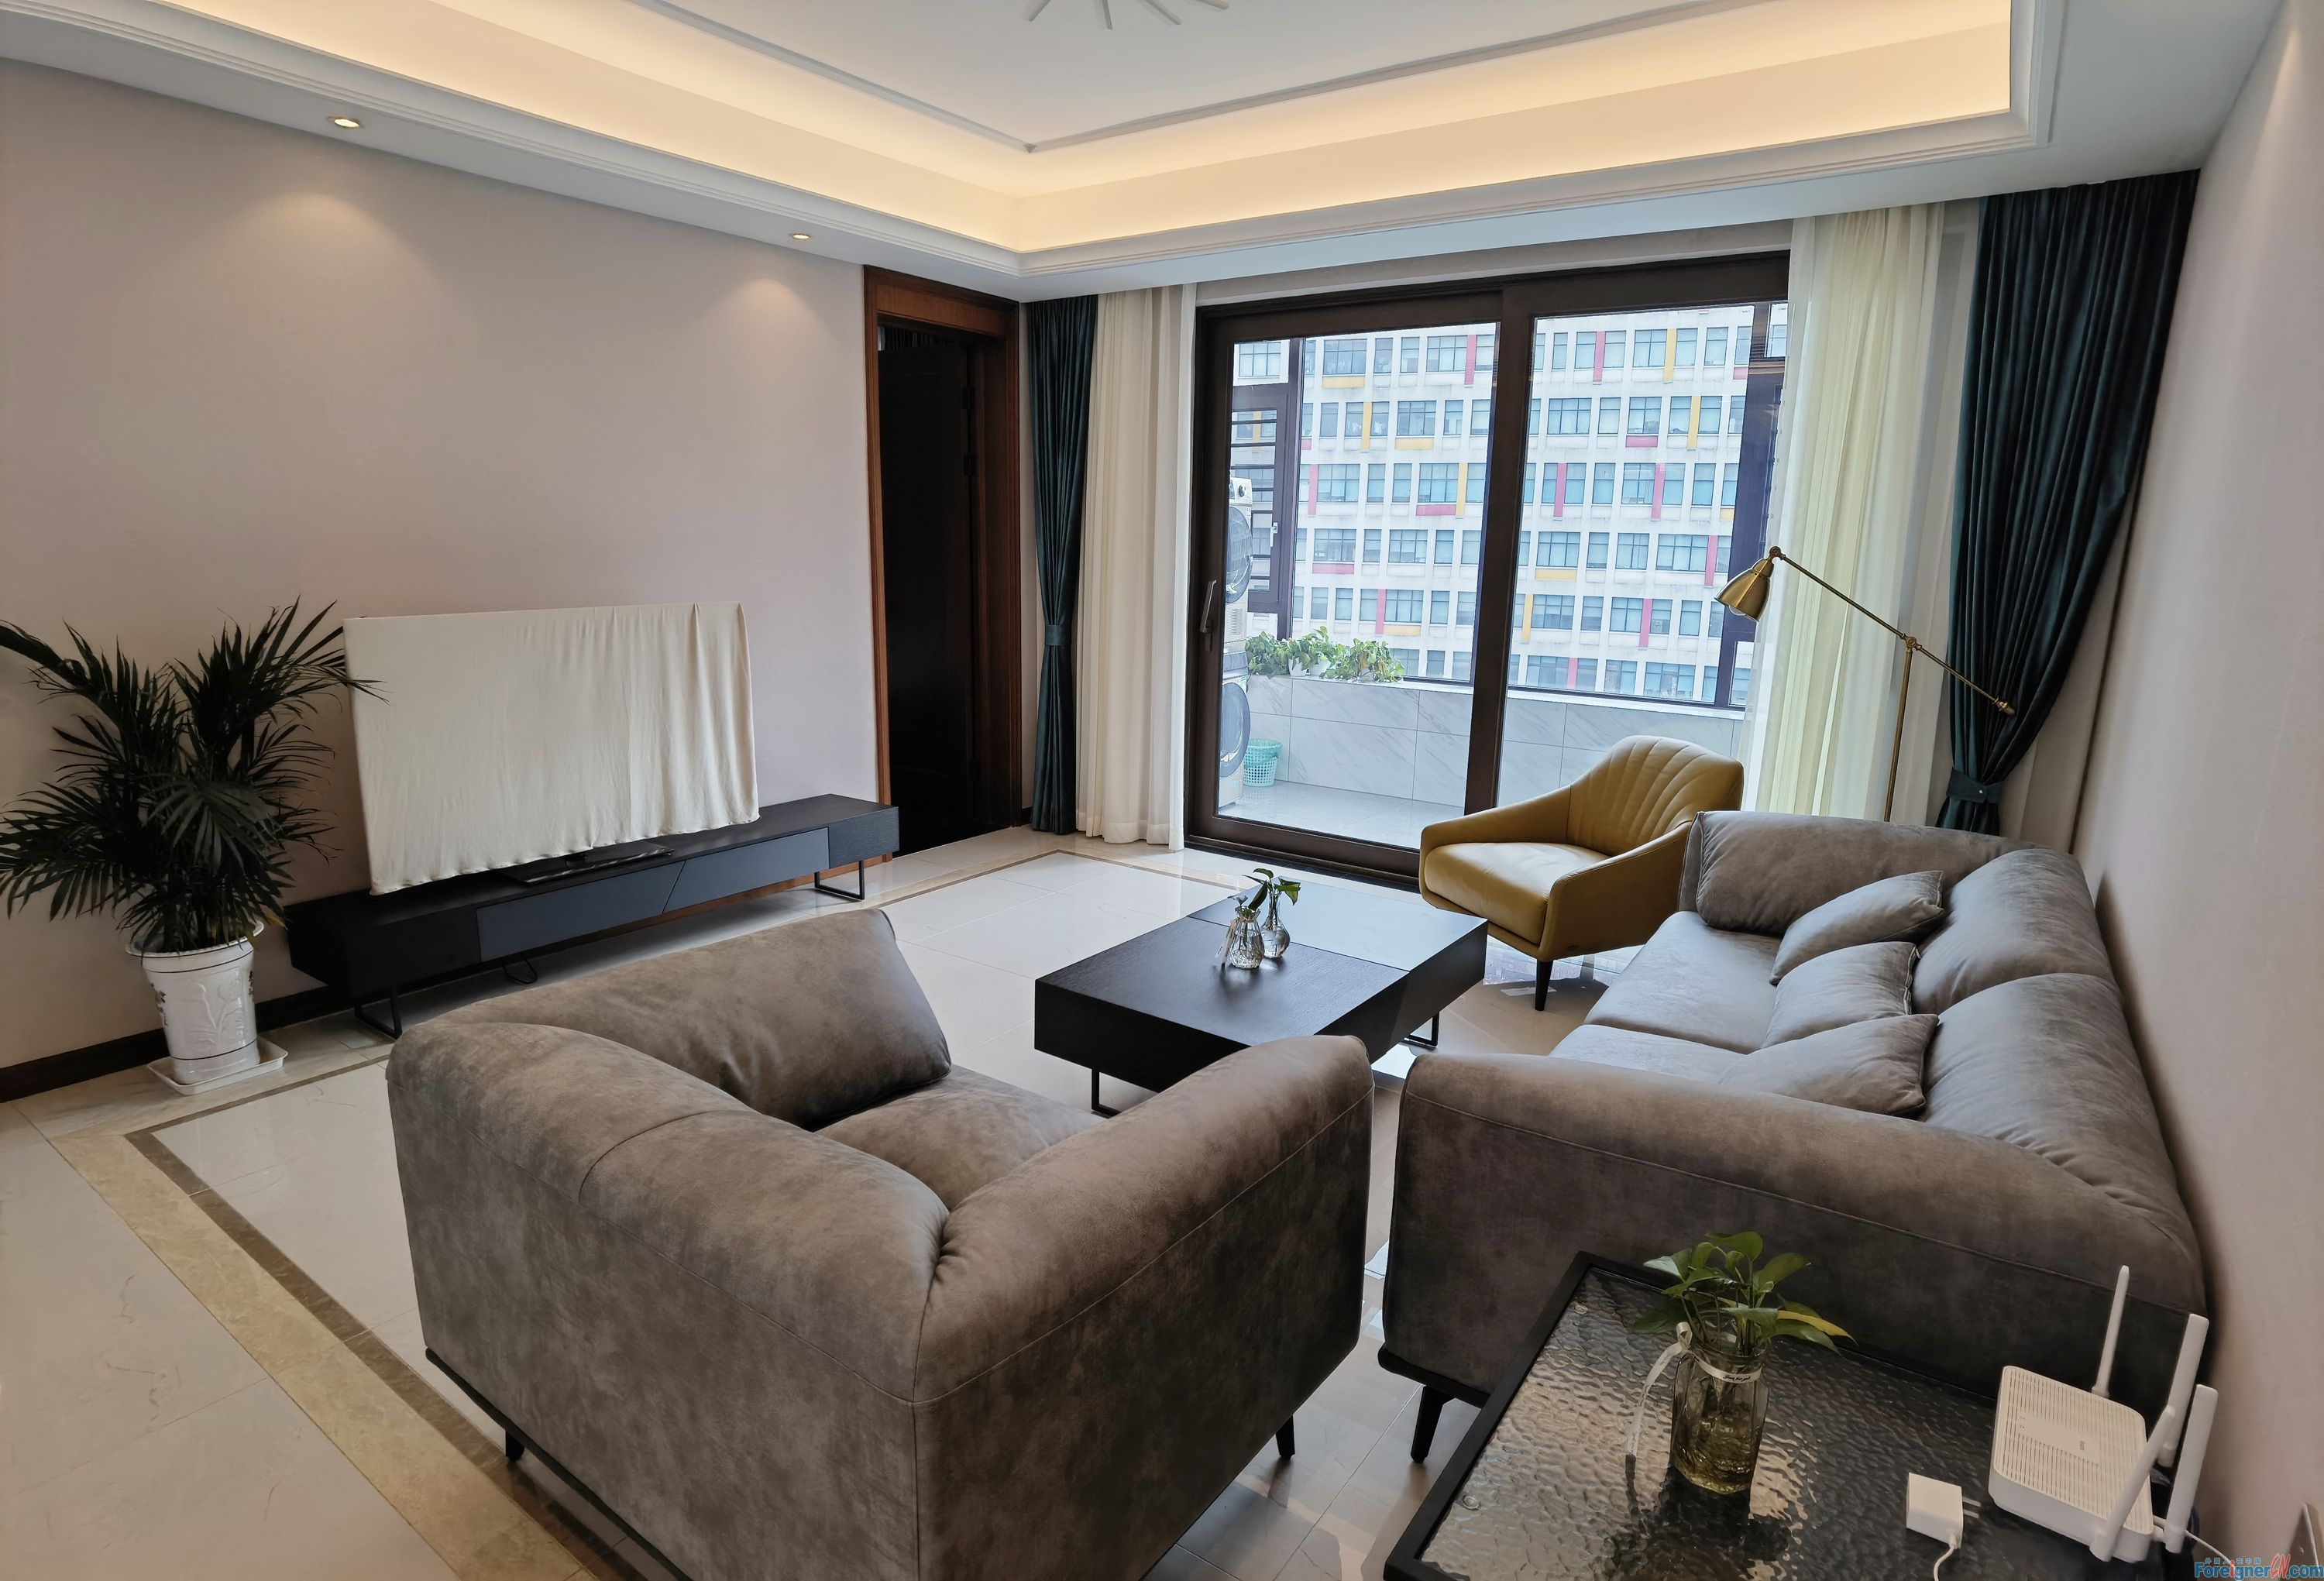 Search for an apartment in Suzhou– floor heating- central AC-oven-cozy decoration with balcony-nearby SSIS and Dulwish - half-opened kitchen